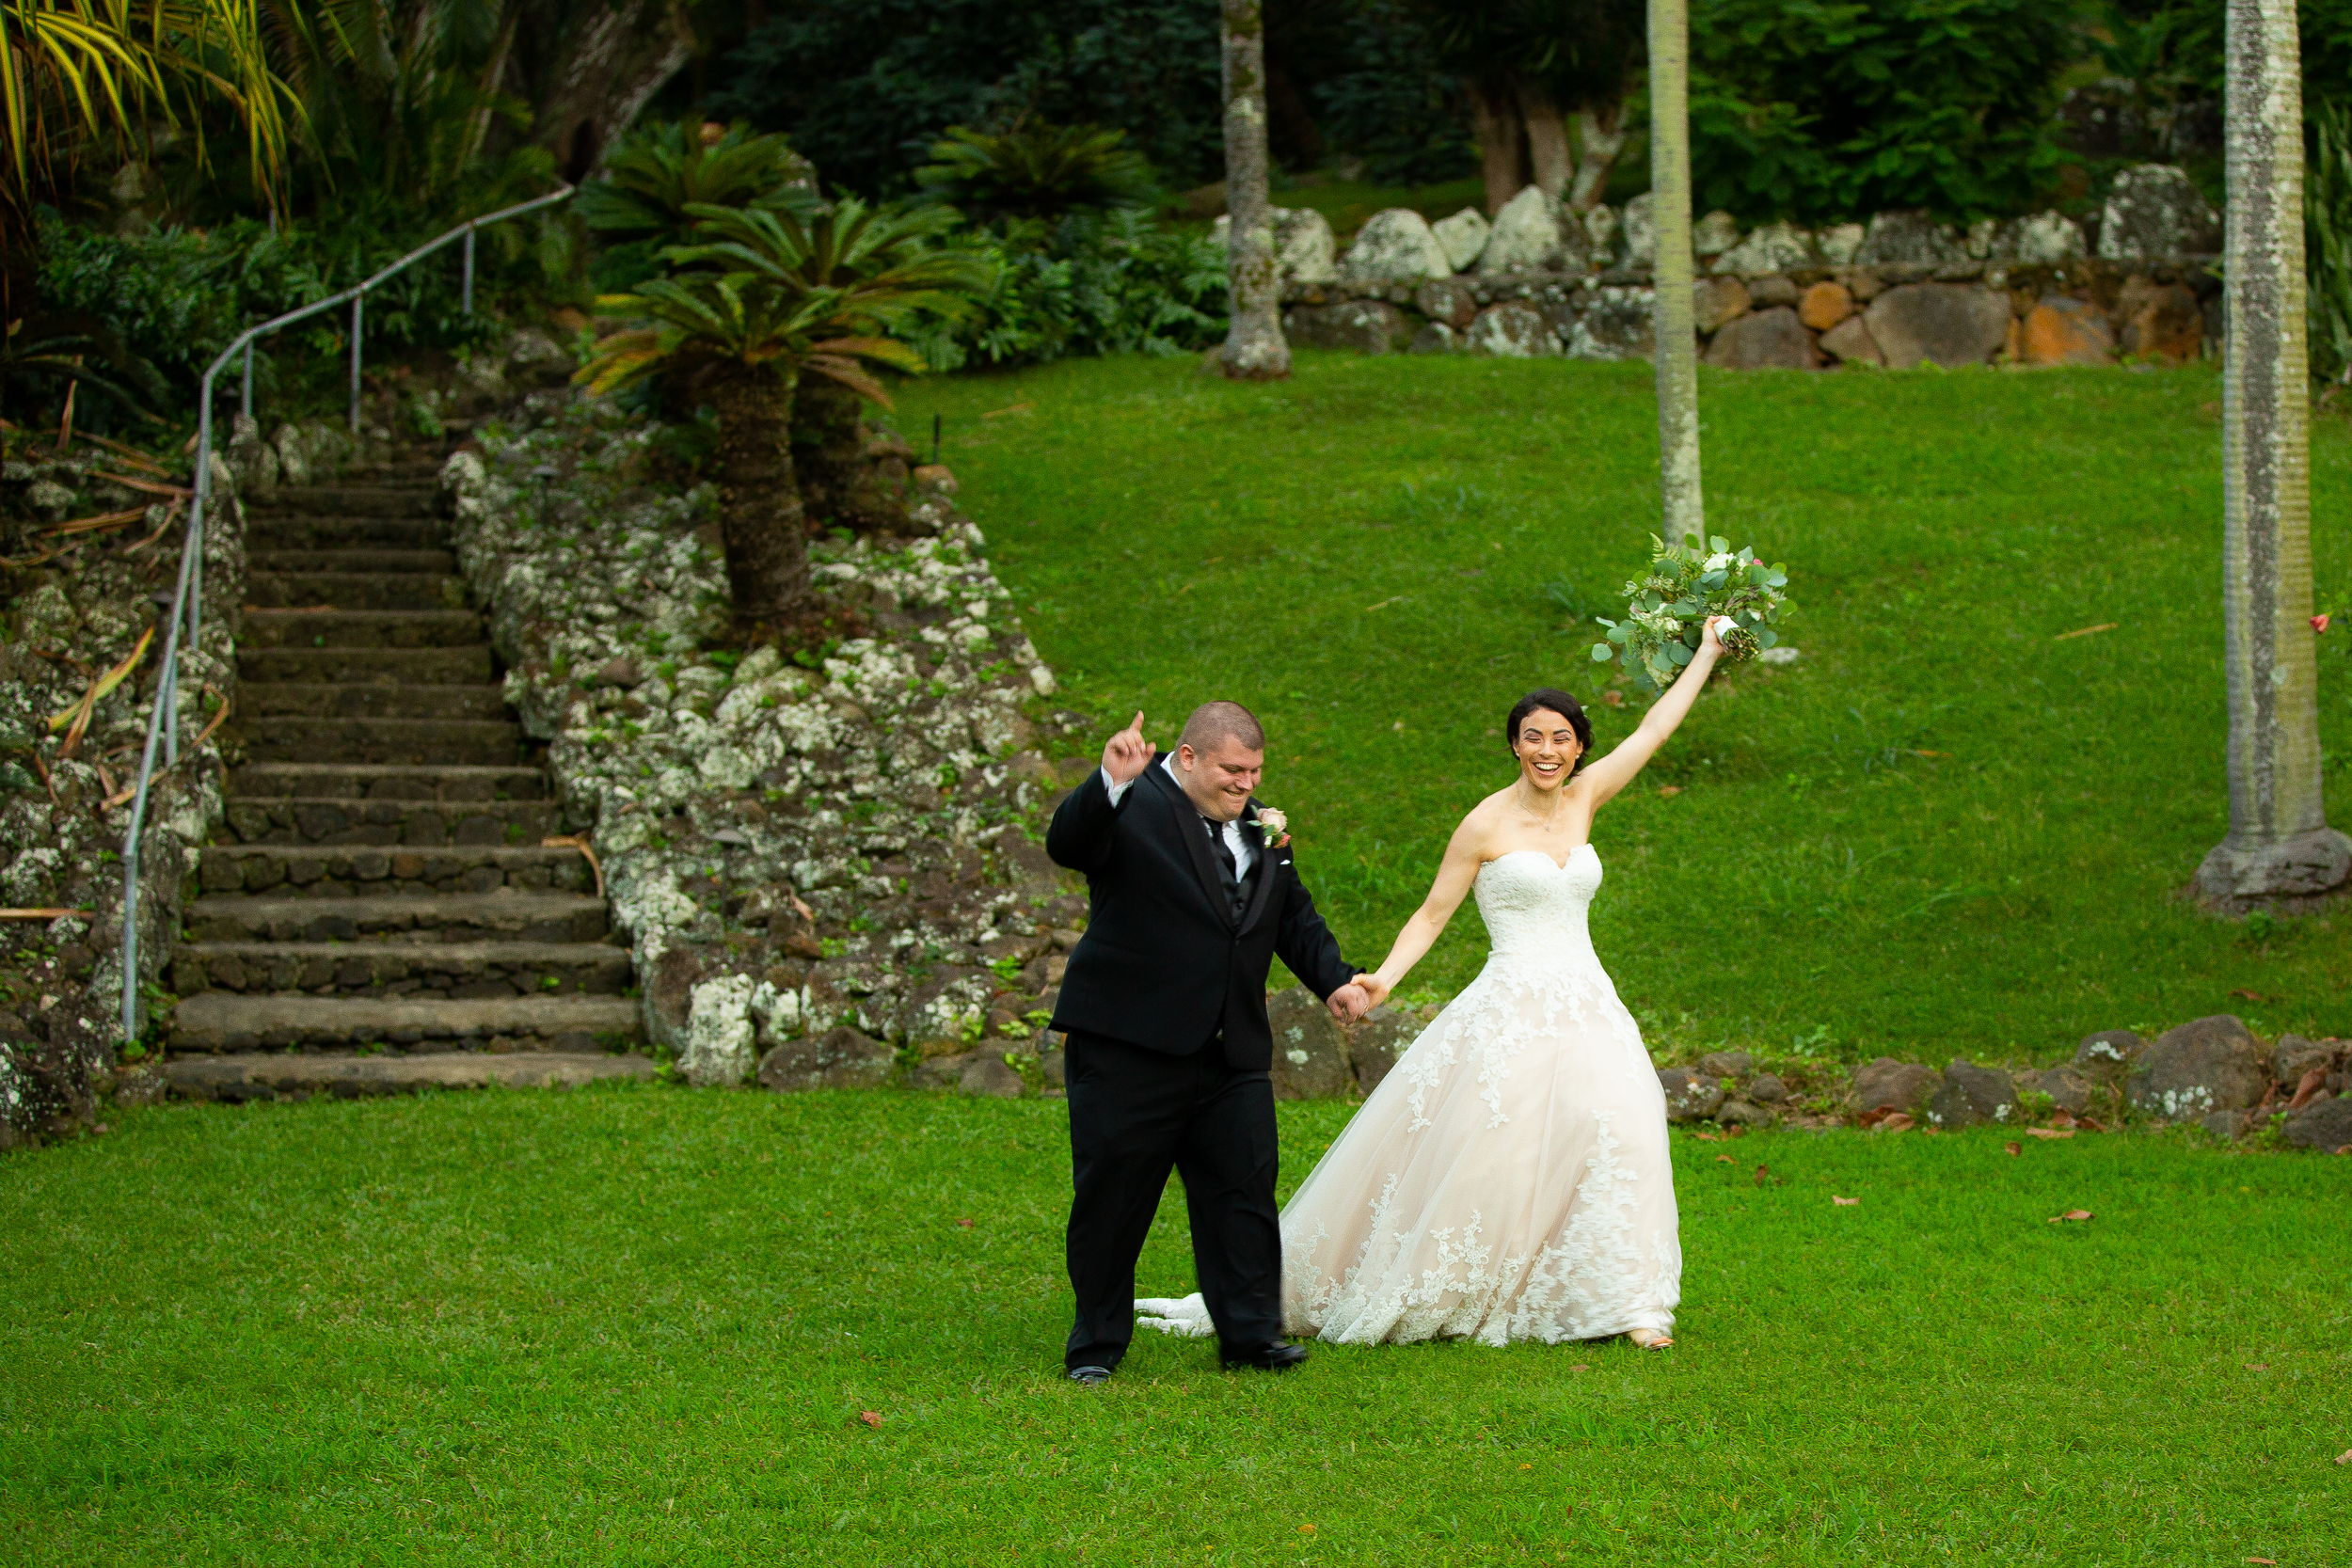 Kualoa Ranch Wedding in Hawaii -69.jpg